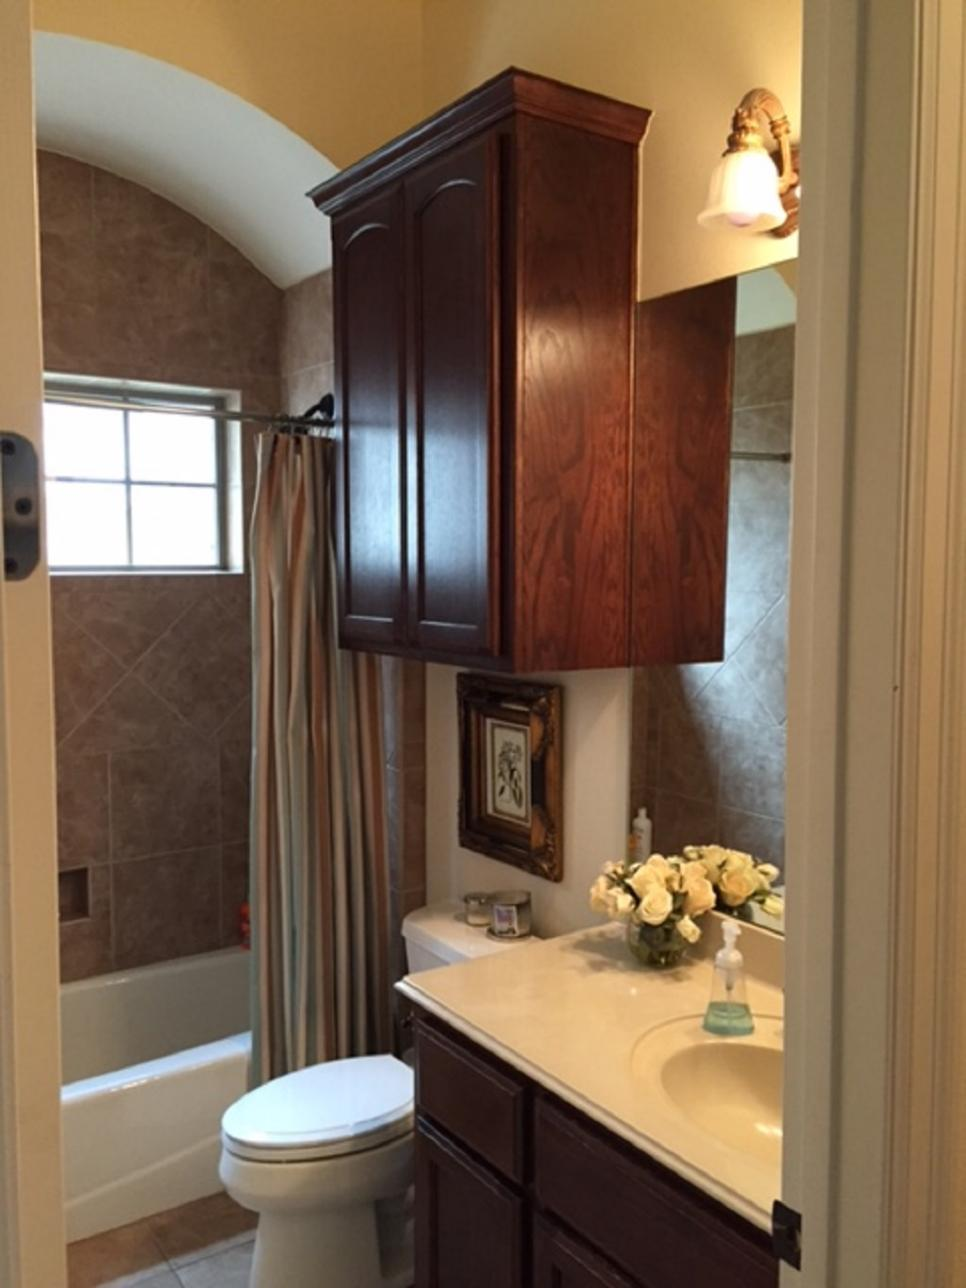 Before and after bathroom remodels on a budget hgtv Average cost for small bathroom remodel